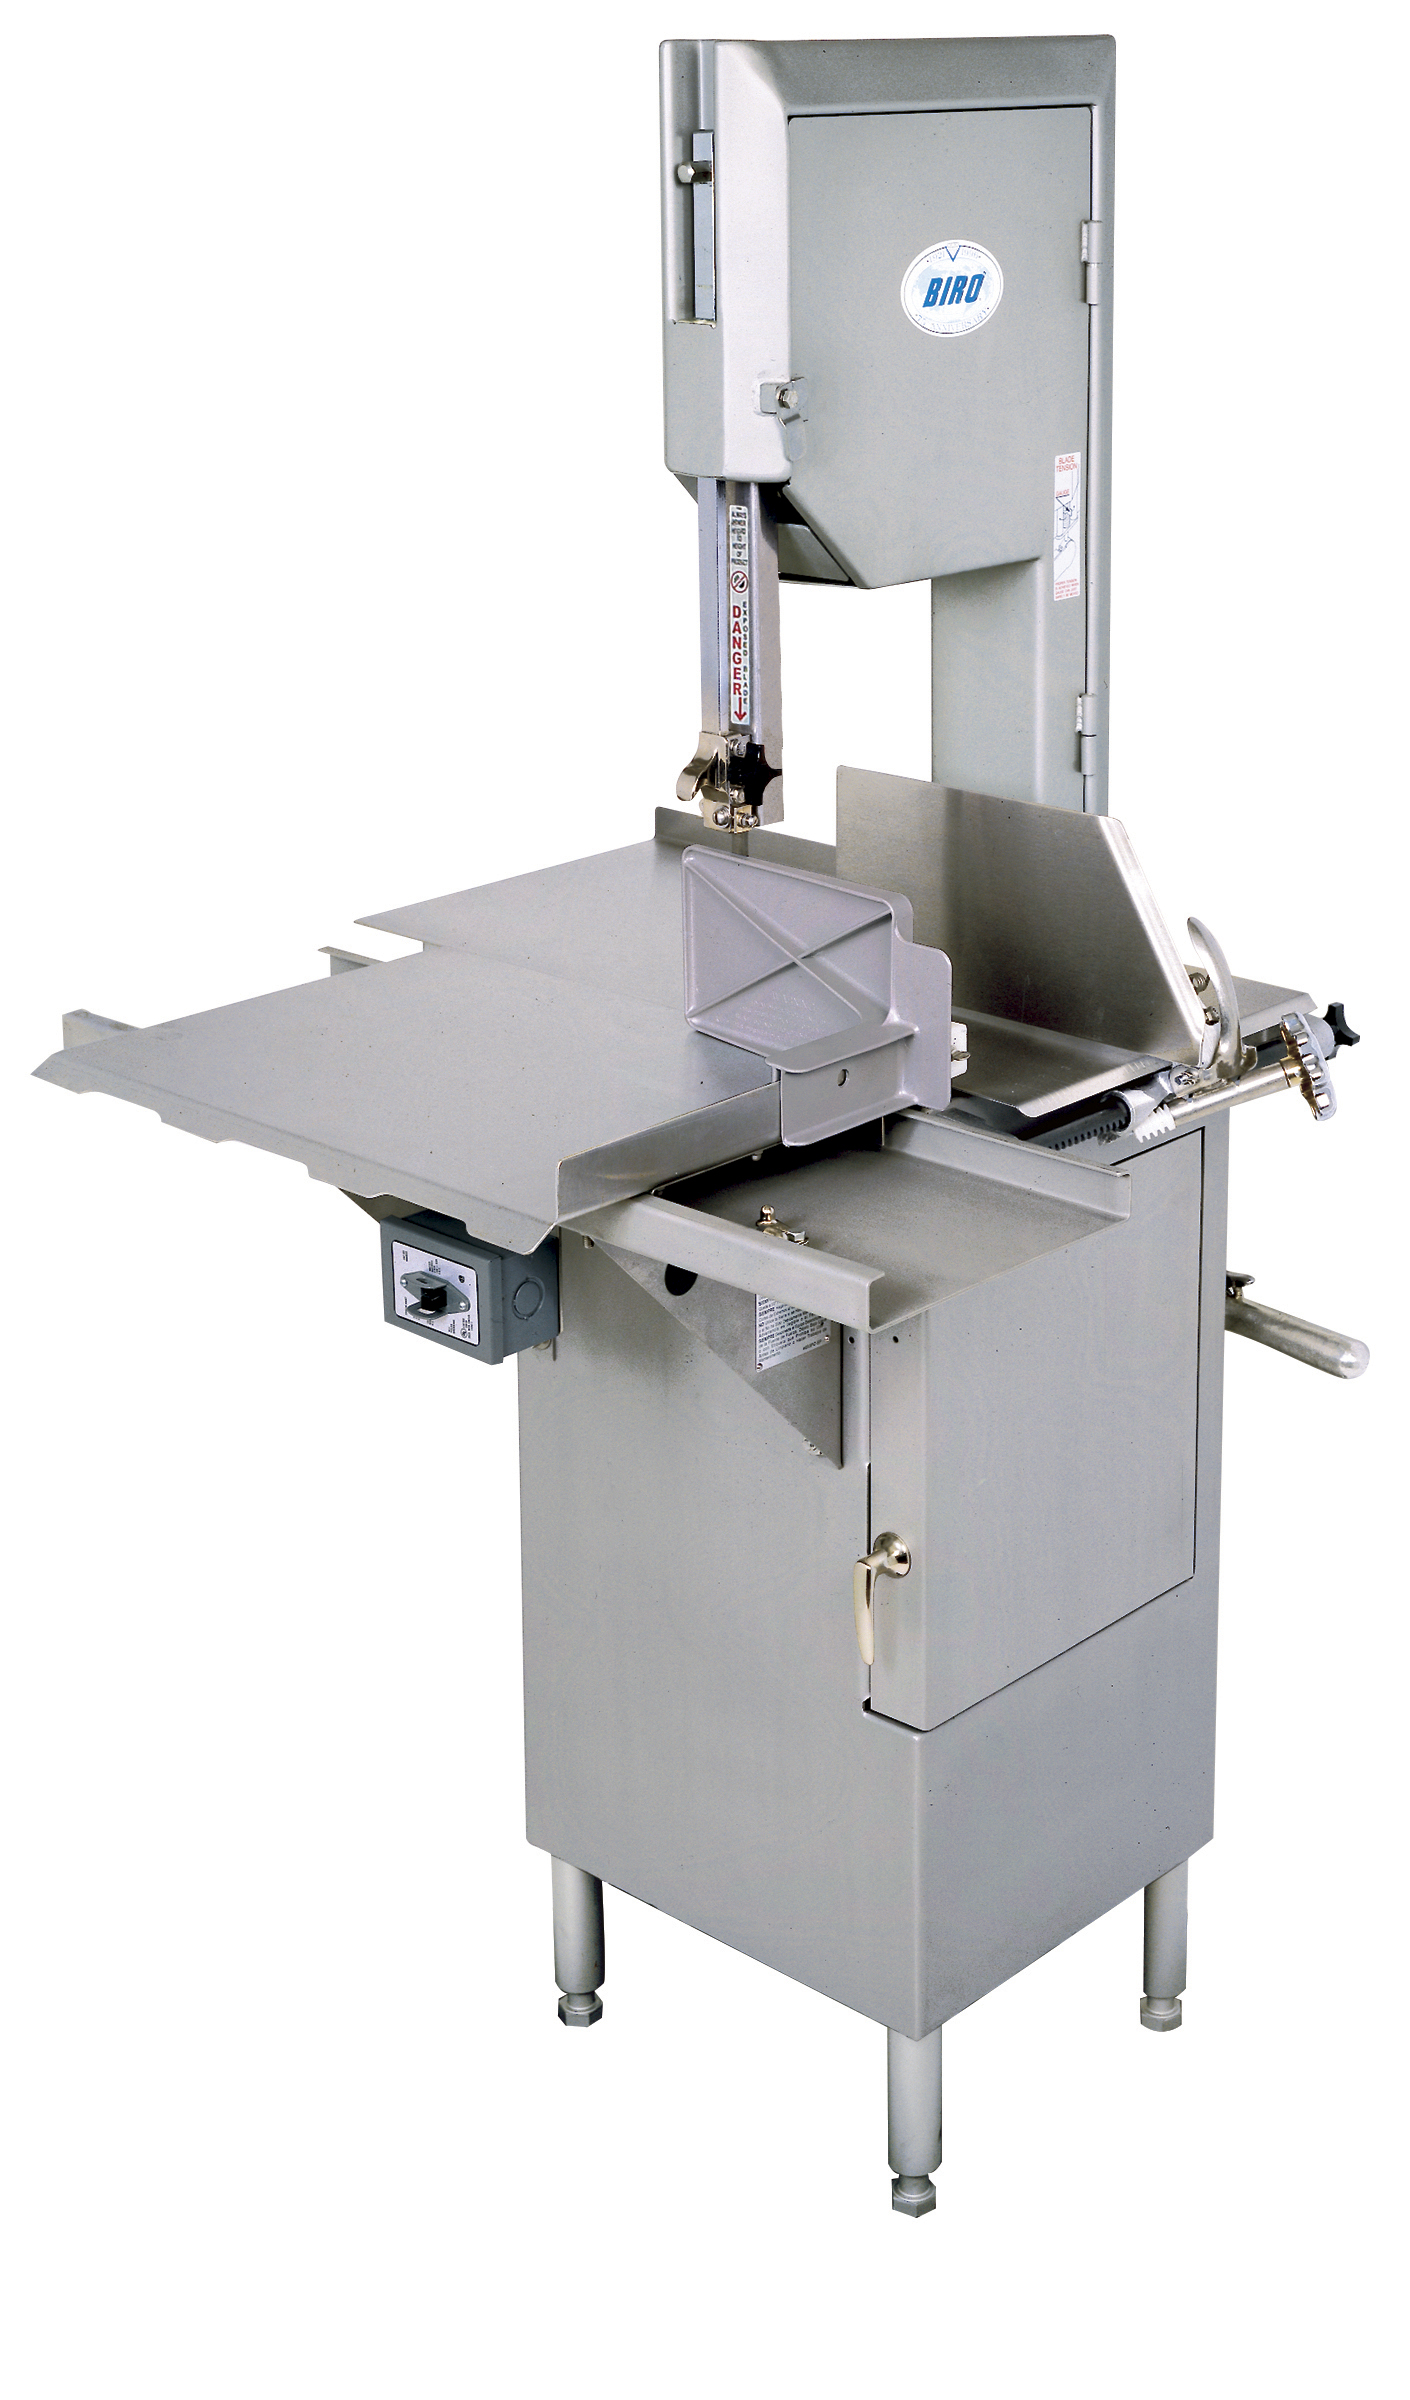 Model 22ss meat saw biro manufacturing optional extra cost stainless steel head greentooth Images